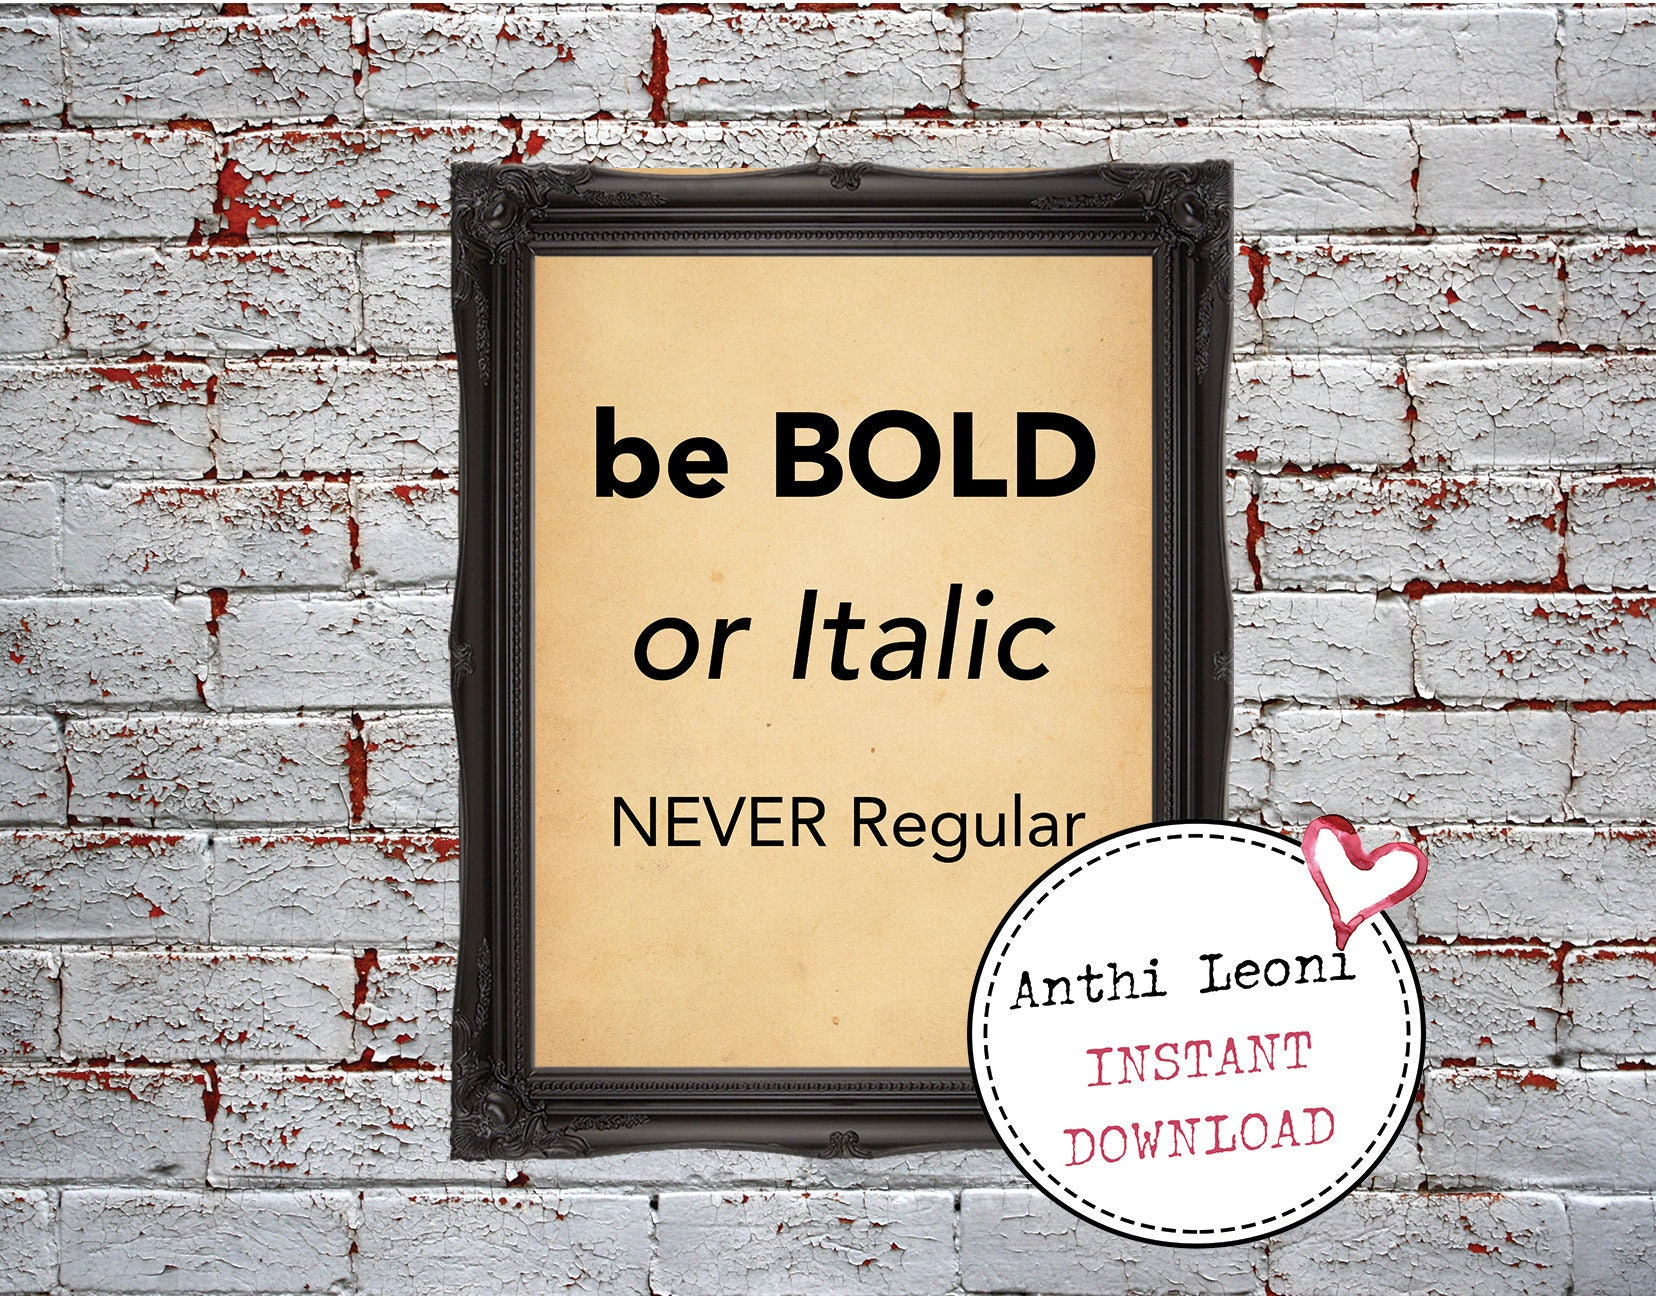 Be Bold Quotes | Be Bold Wall Decor | Dorm Room | Dorm Decor Ideas ...